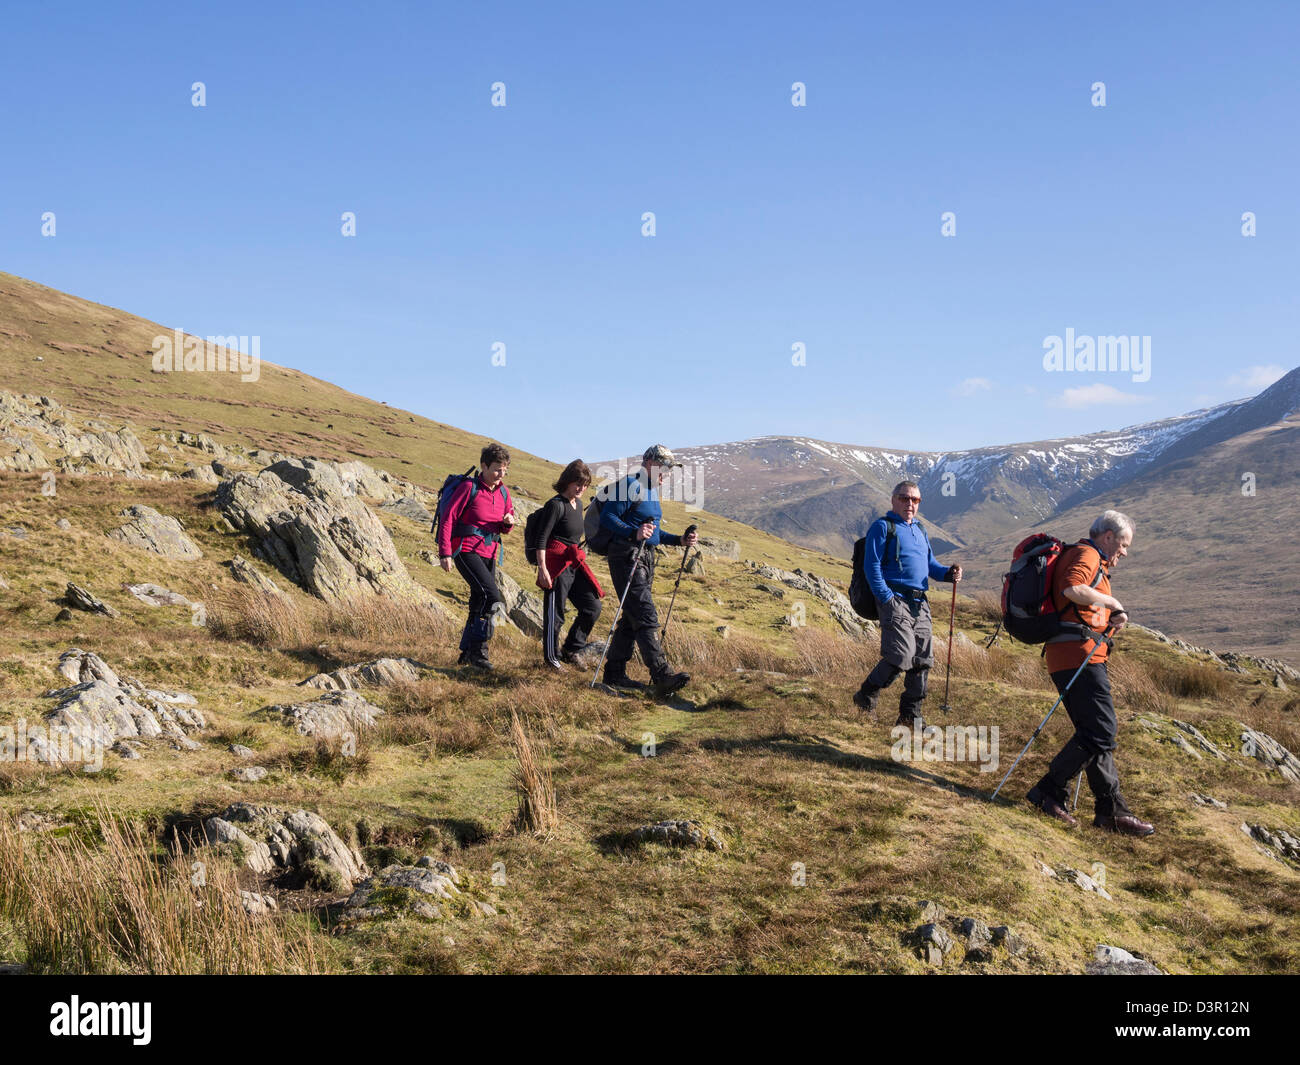 Hillwalkers descending from hills in Snowdonia National Park near Bethesda, Gwynedd, North Wales, UK, Britain - Stock Image